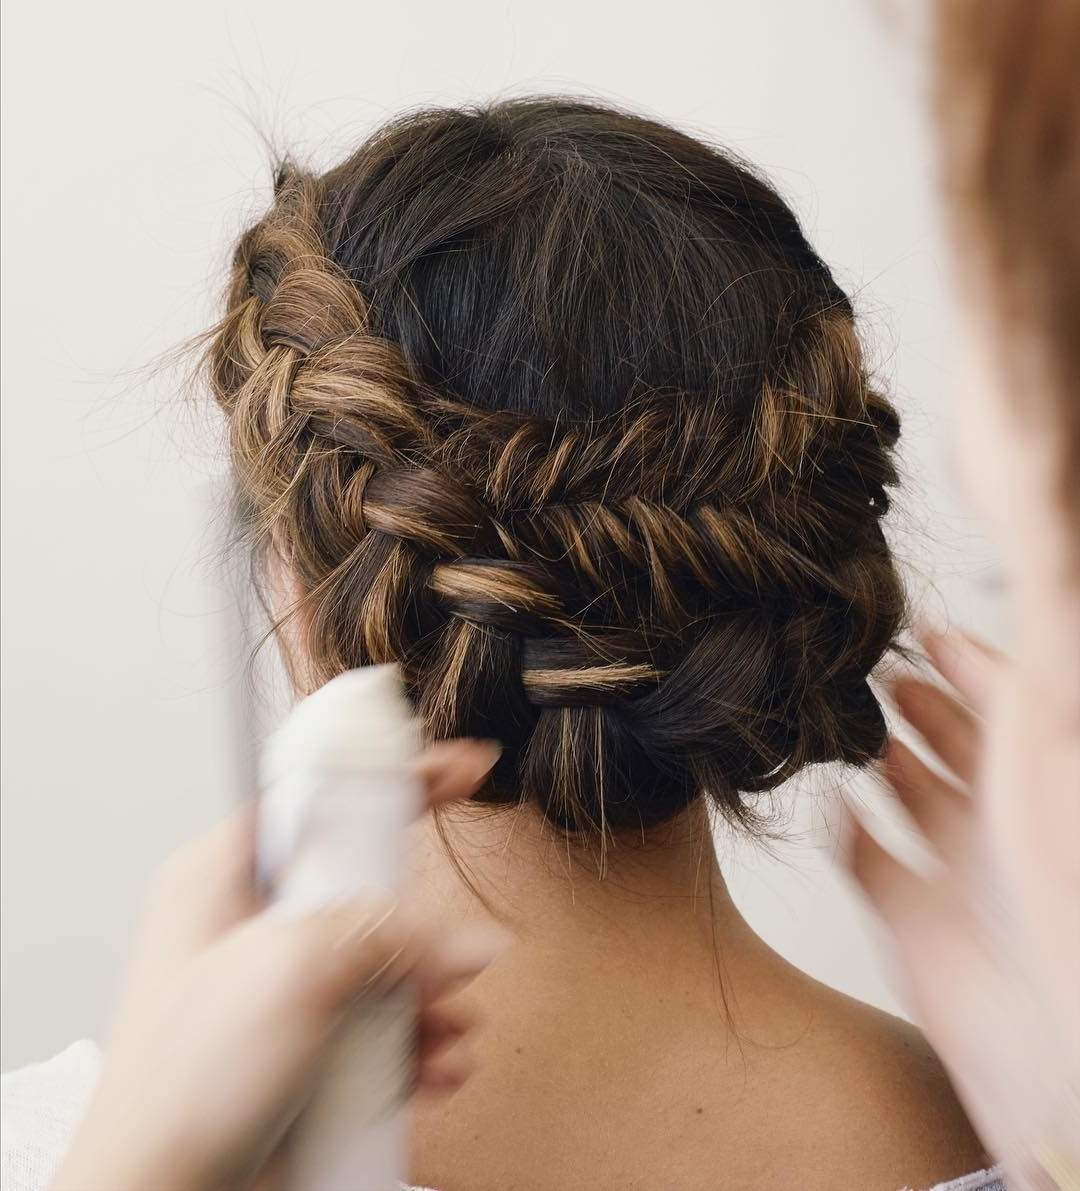 Brides Intended For Newest Classic Bridesmaid Ponytail Hairstyles (View 6 of 20)